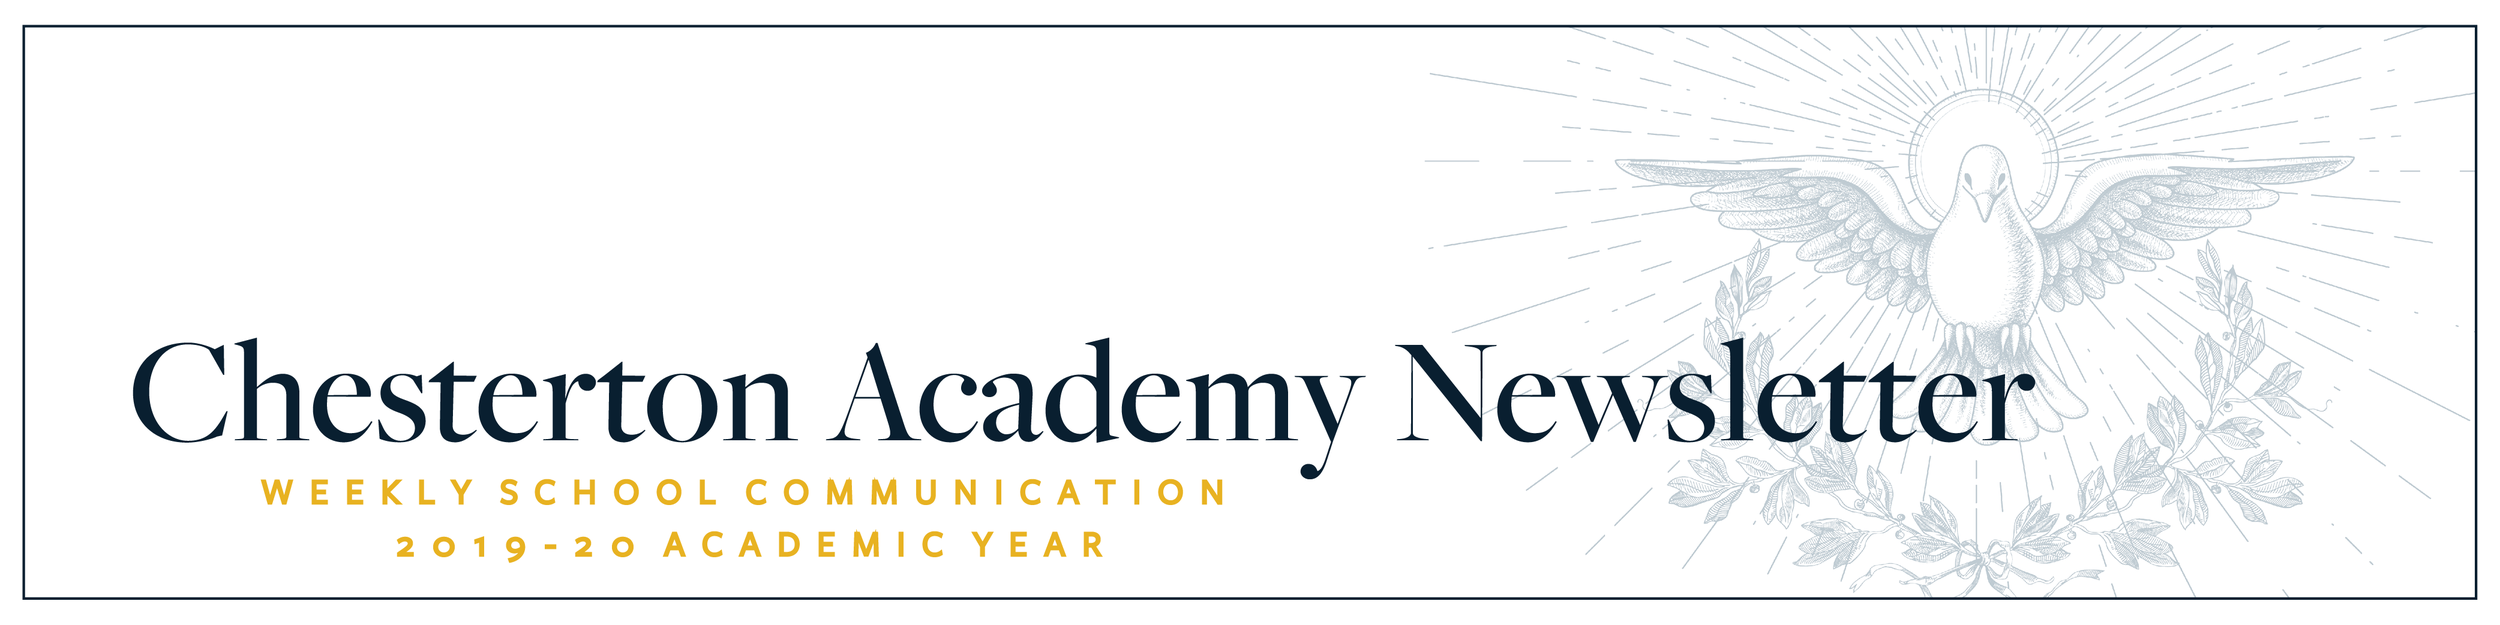 CA Newsletter 2019-20.png